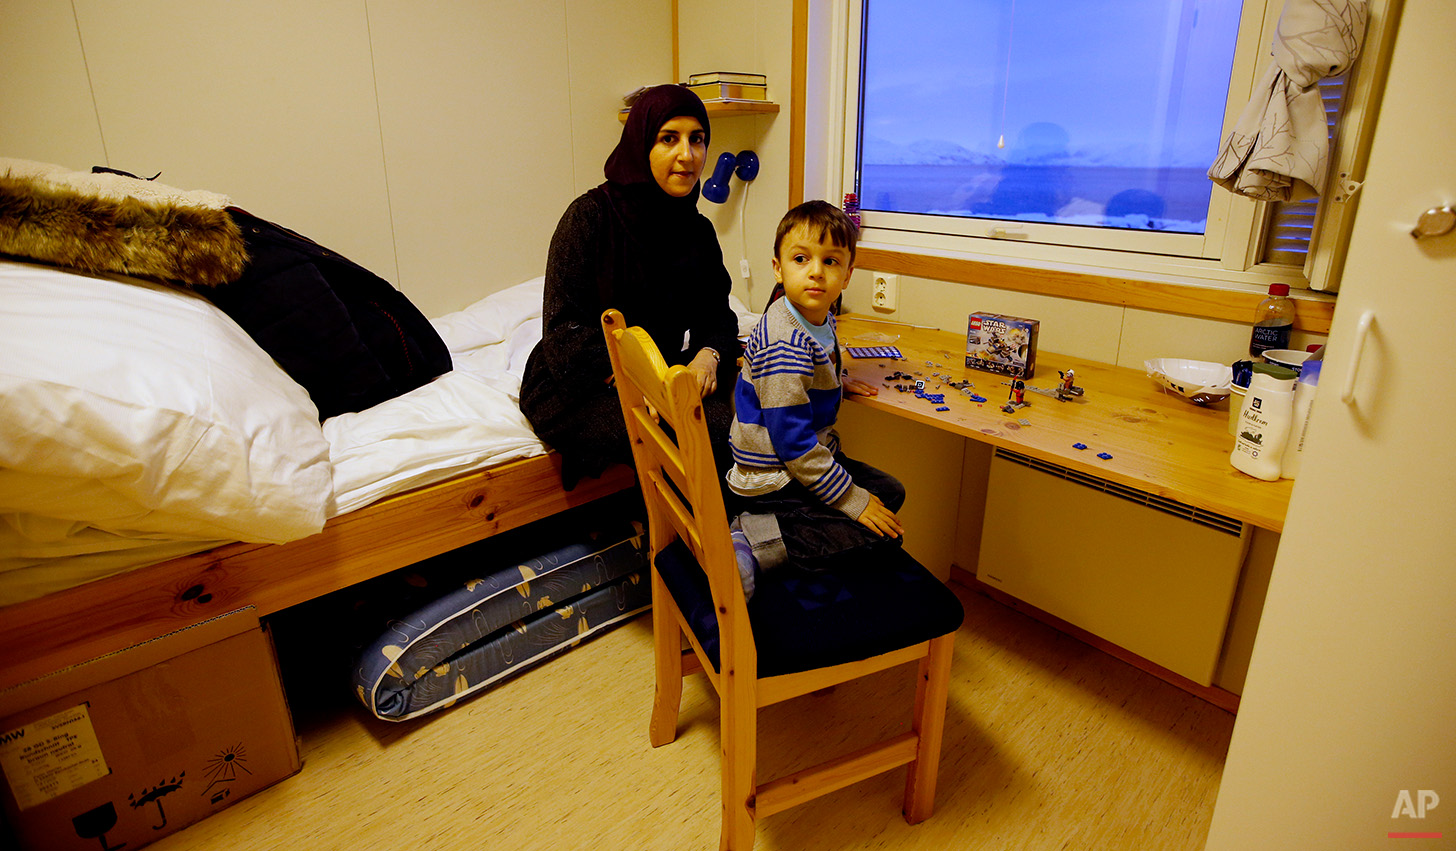 In this photo taken Thursday, Feb. 4, 2016 in Hammerfest, northern Norway, refugee Huda al Haggar and her son Omar from Sanaa in Yemen talk to the Associated Press at the northernmost refugee camp in the world. From her modest room, Huda al-Haggar admires the wonderland of snow and ice, a sight so different from her native Yemen, where a Saudi airstrike destroyed her home, forcing her to flee with her young son. (AP Photo/Alastair Grant)